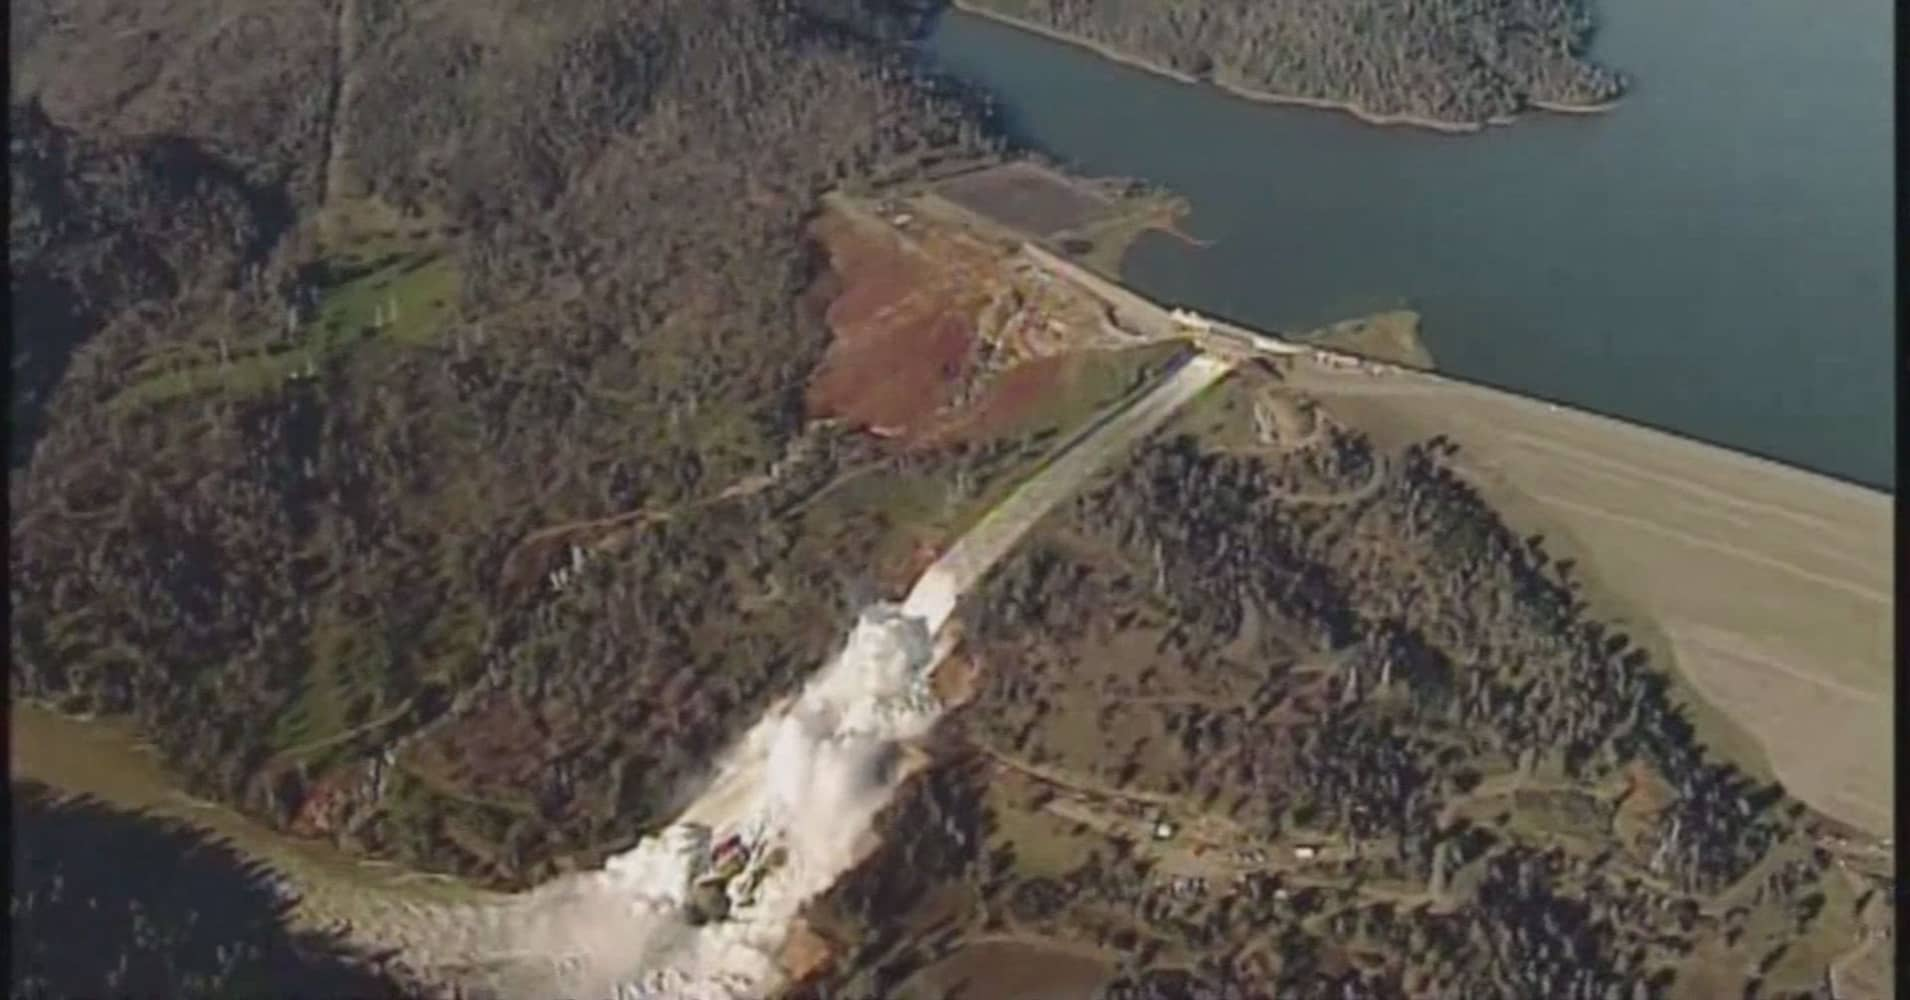 Water rushes over damaged primary spillway at Oroville Dam in Northern California in photo taken in